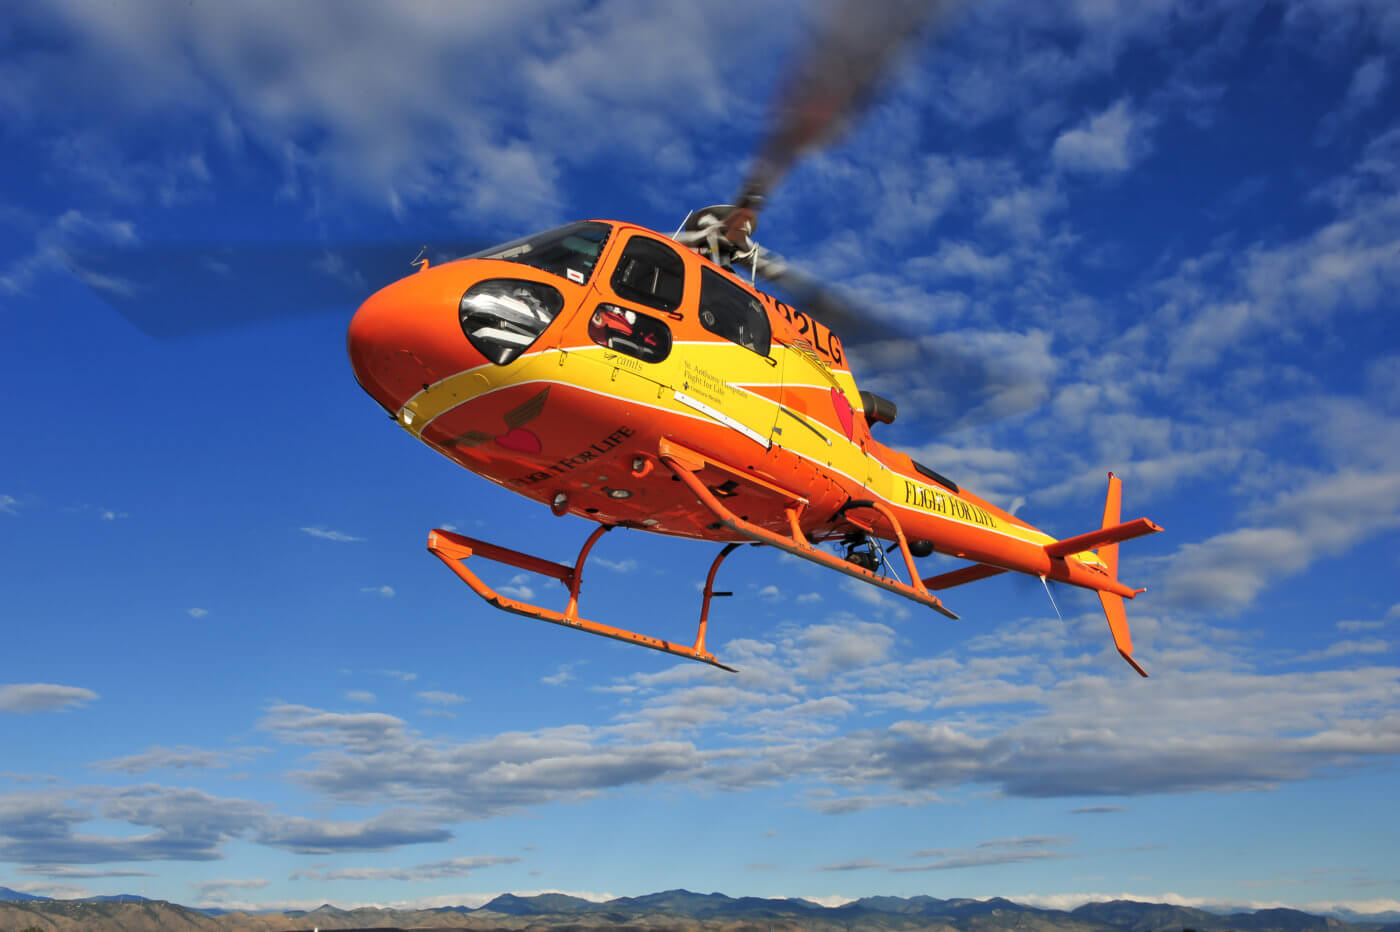 A Flight For Life AS350 B3. The design of the AS350 hydraulic system was at the center of the NTSB's investigation into the crash of a Flight For Life AS350 B3e on July 3, 2015. Mike Reyno Photo